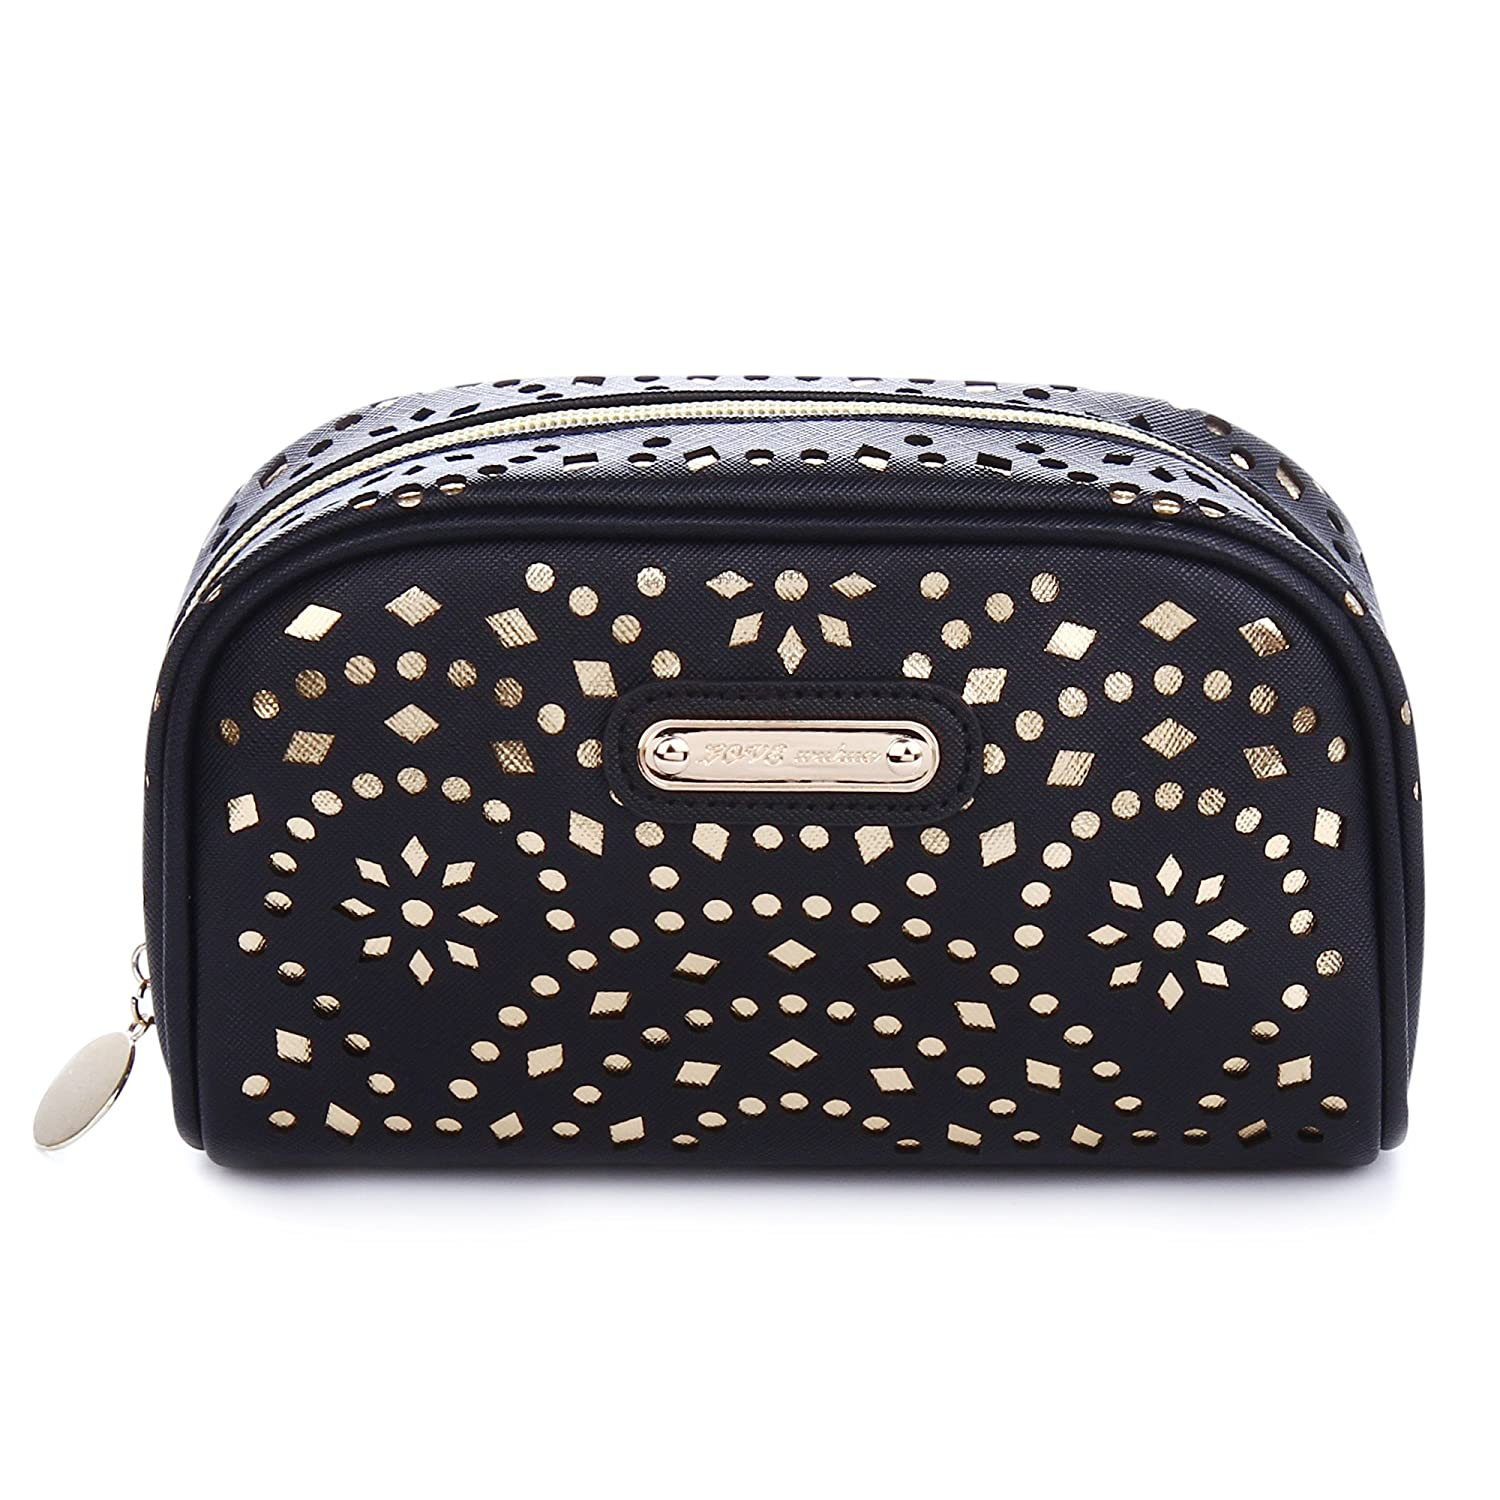 Wuhua Makeup Bag, Wuhua Gold Pattern Cosmetic Bag with Zipper, Toiletry Travel Bag for Women, Single Layer Storage Bag for Brushes Jewelry Accessories Collection